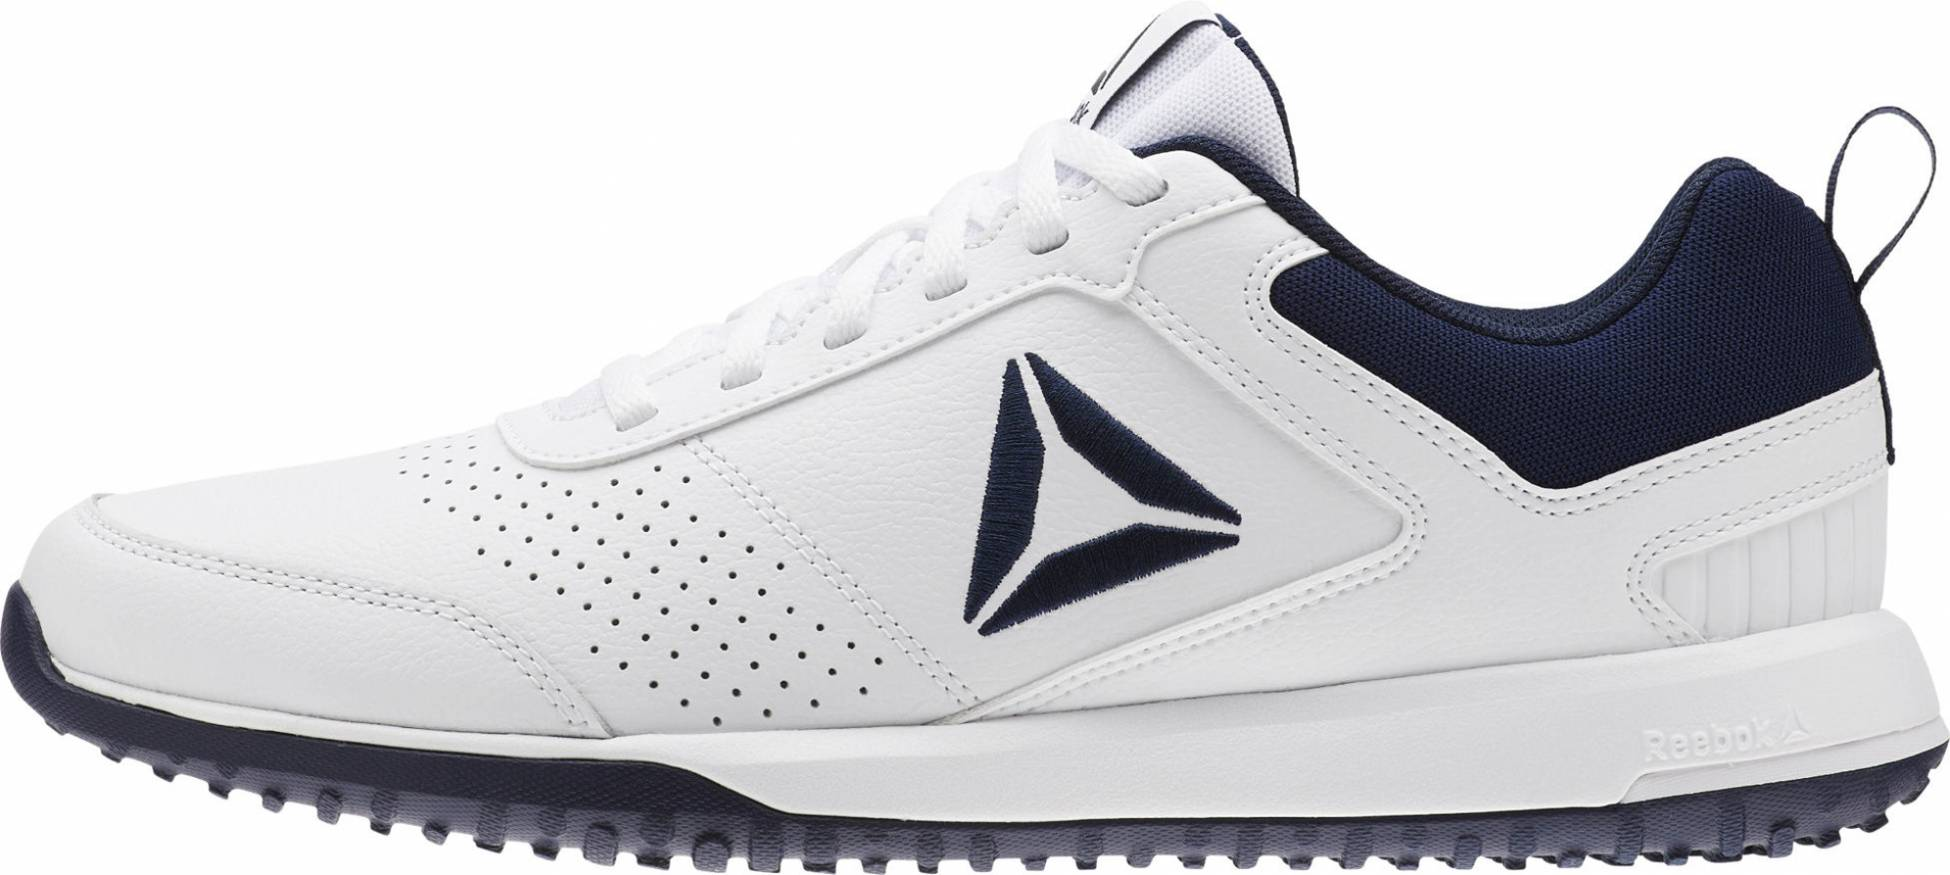 Only $43 + Review of Reebok CXT TR